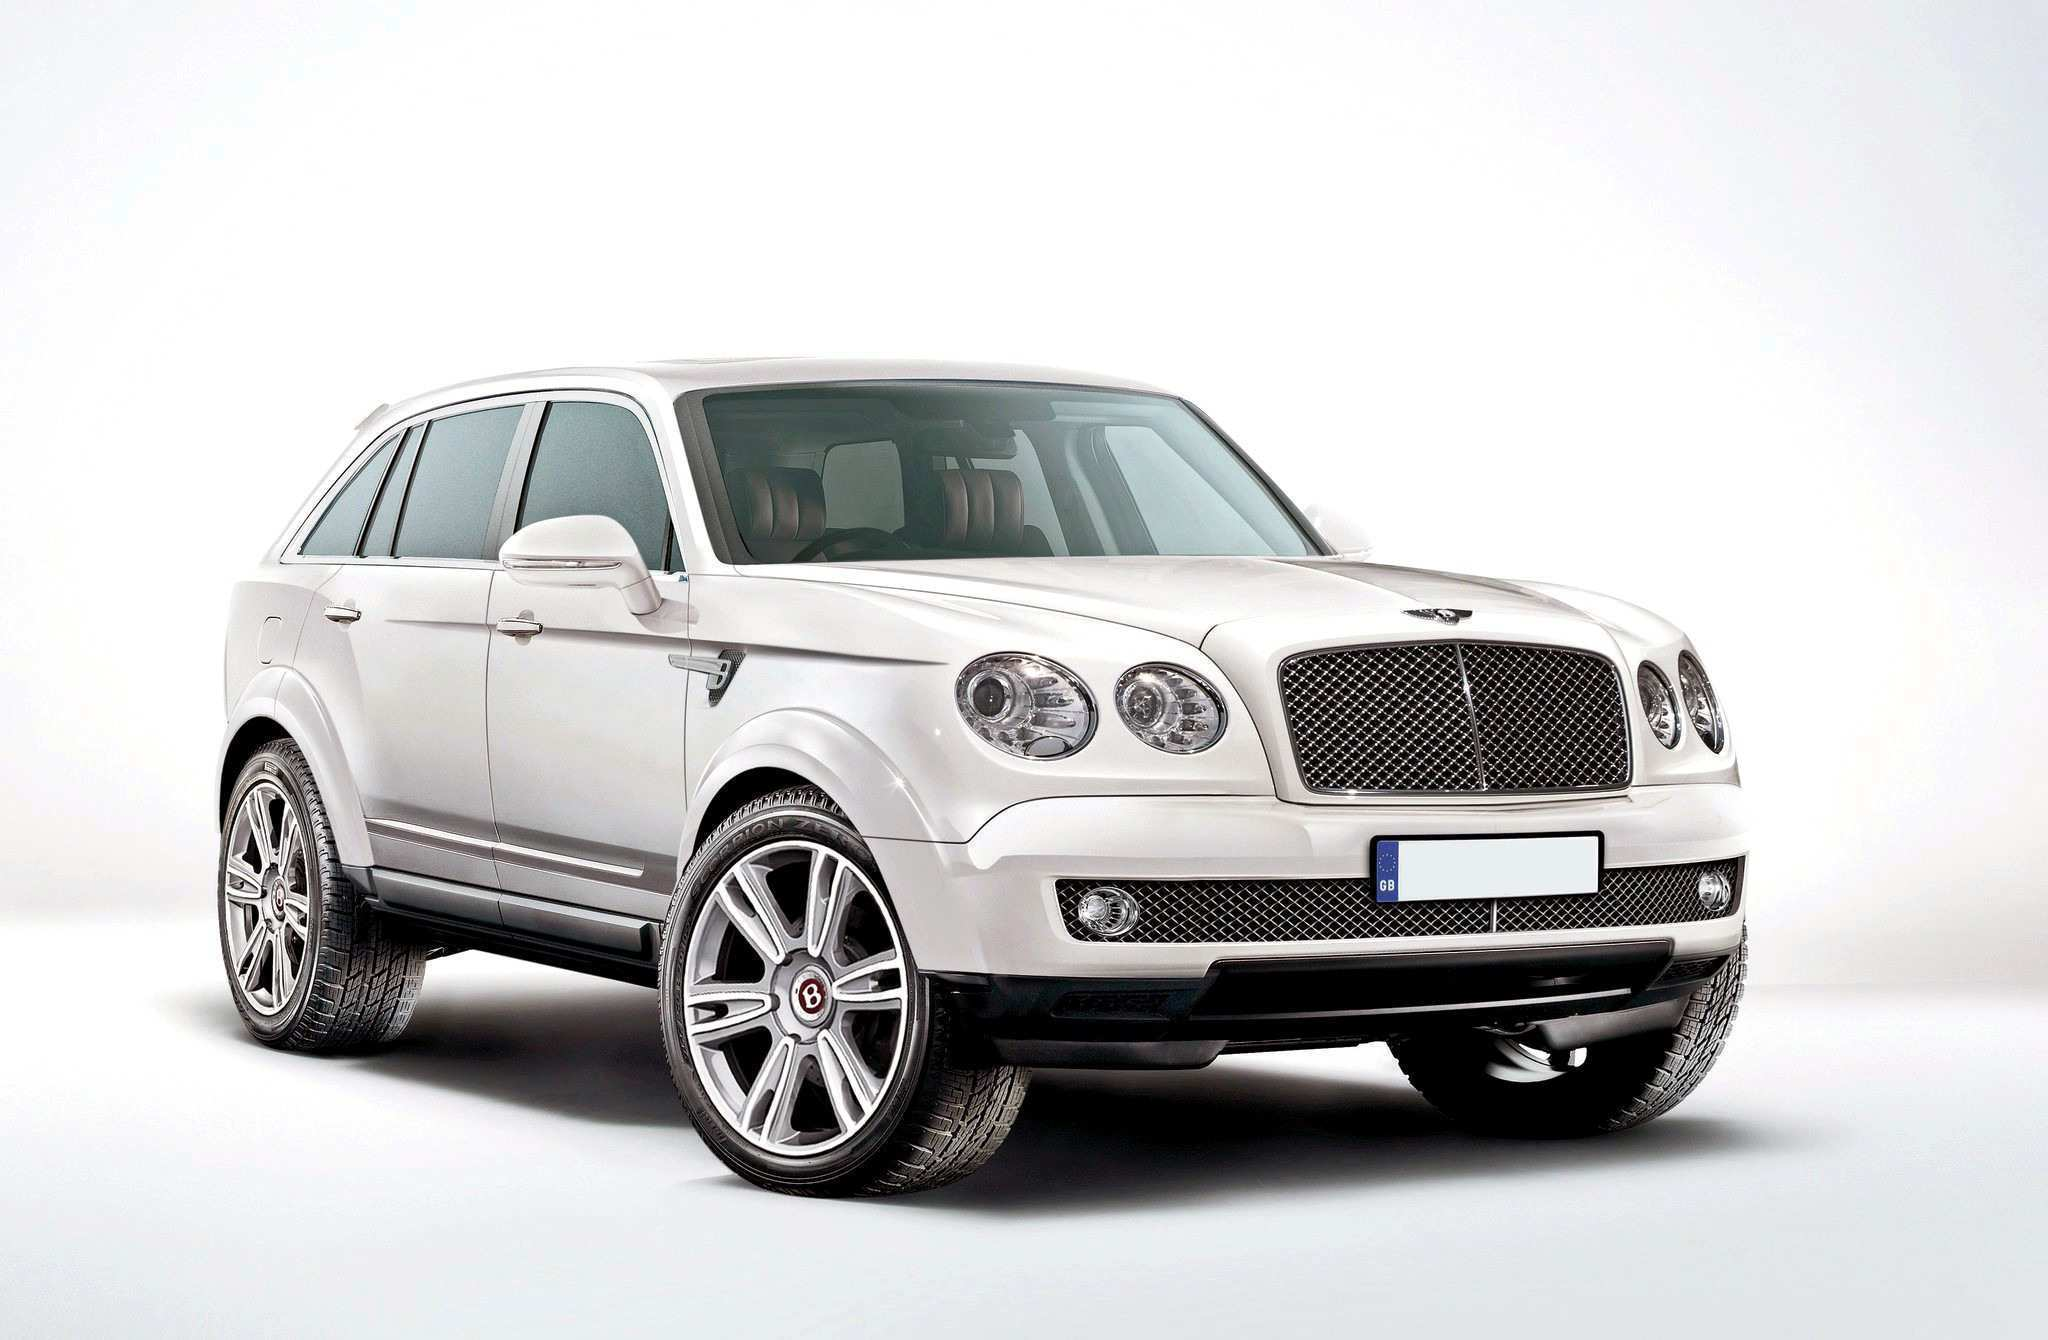 76 New 2019 Bentley Suv Price Style for 2019 Bentley Suv Price